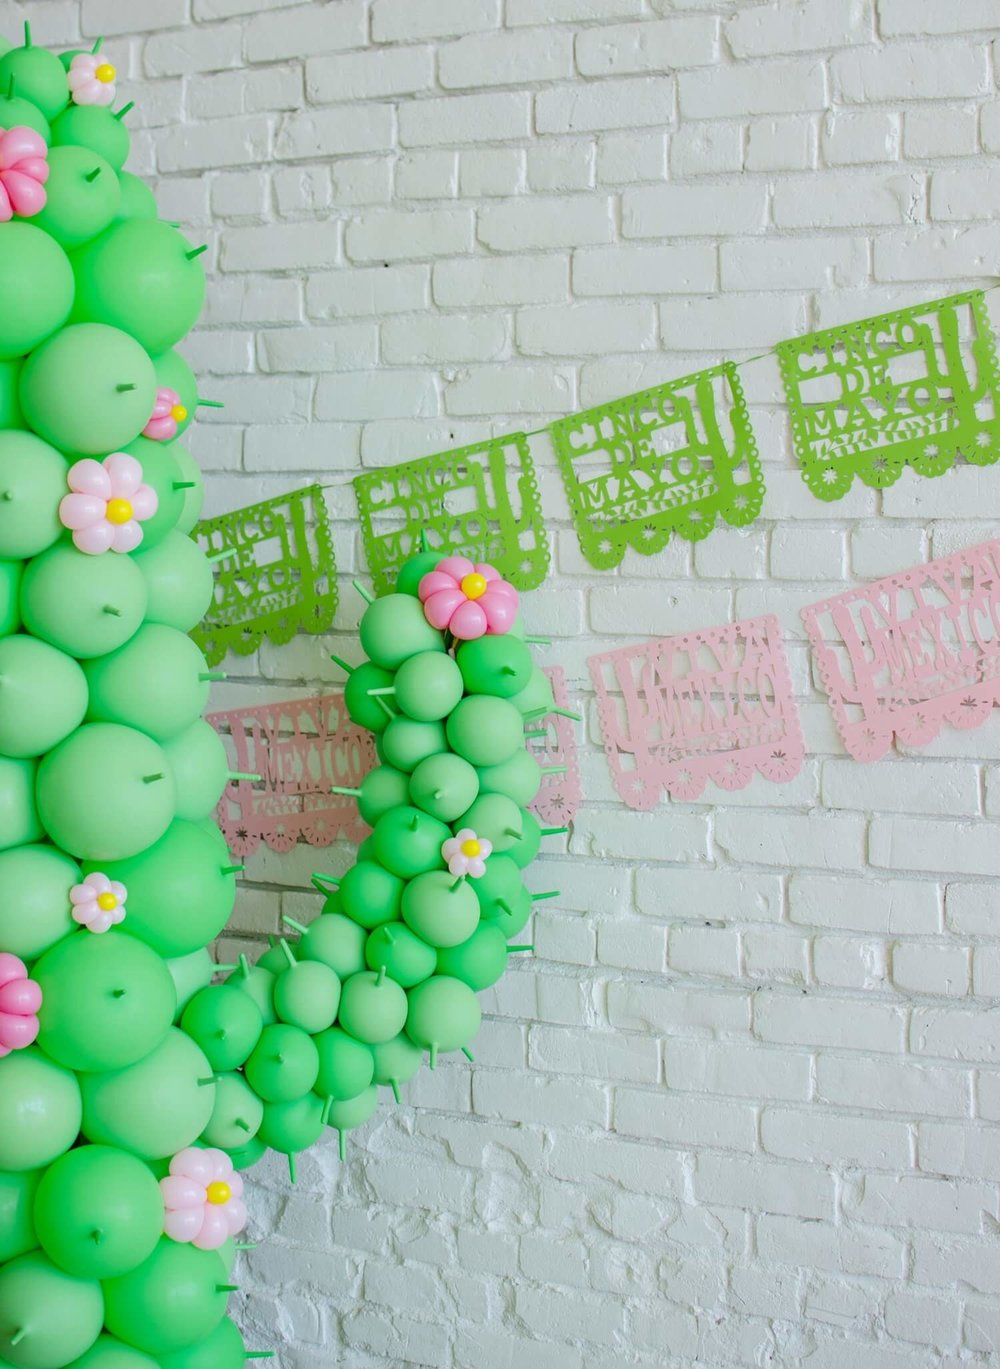 Cinco de Mayo party ideas / Cinco de Mayo Party decor / Papel Picado decor / Balloon Art / Southwestern party ideas / Styled by Carolina from MINT Event Design / www.minteventdesign.com